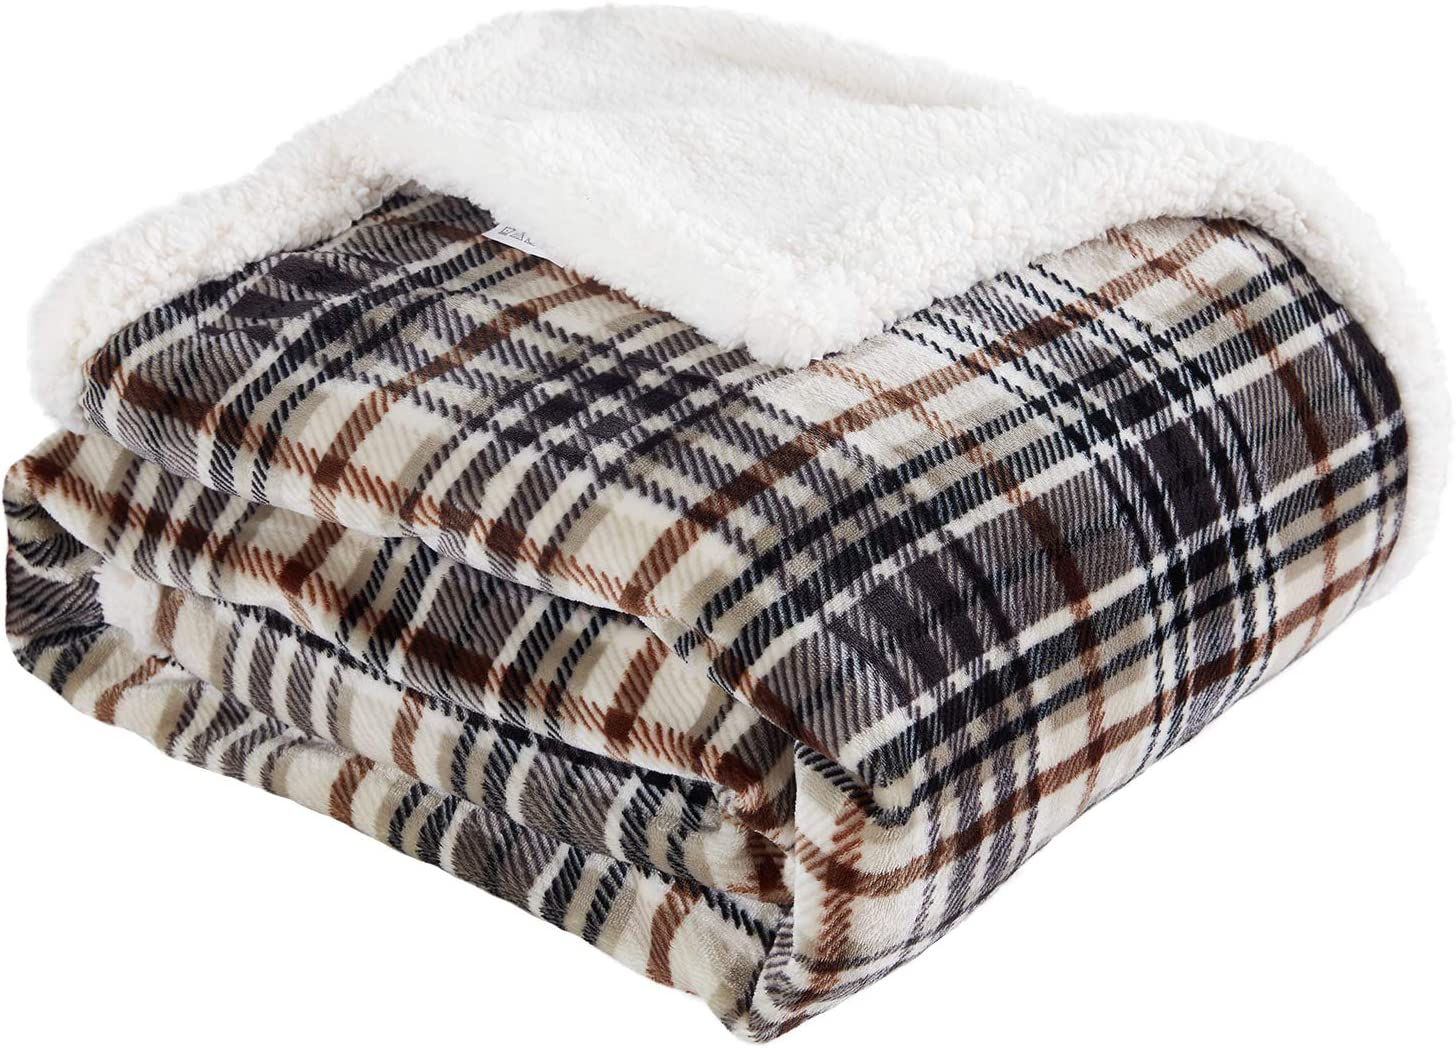 """Touchat Sherpa Plaid Throw Blanket, Fuzzy Fluffy Cozy Soft Blanket, Fleece Flannel Plush Twin Size Microfiber Blanket for Couch Bed Sofa (60"""" X 70"""", Plaid Brown): Home & Kitchen"""